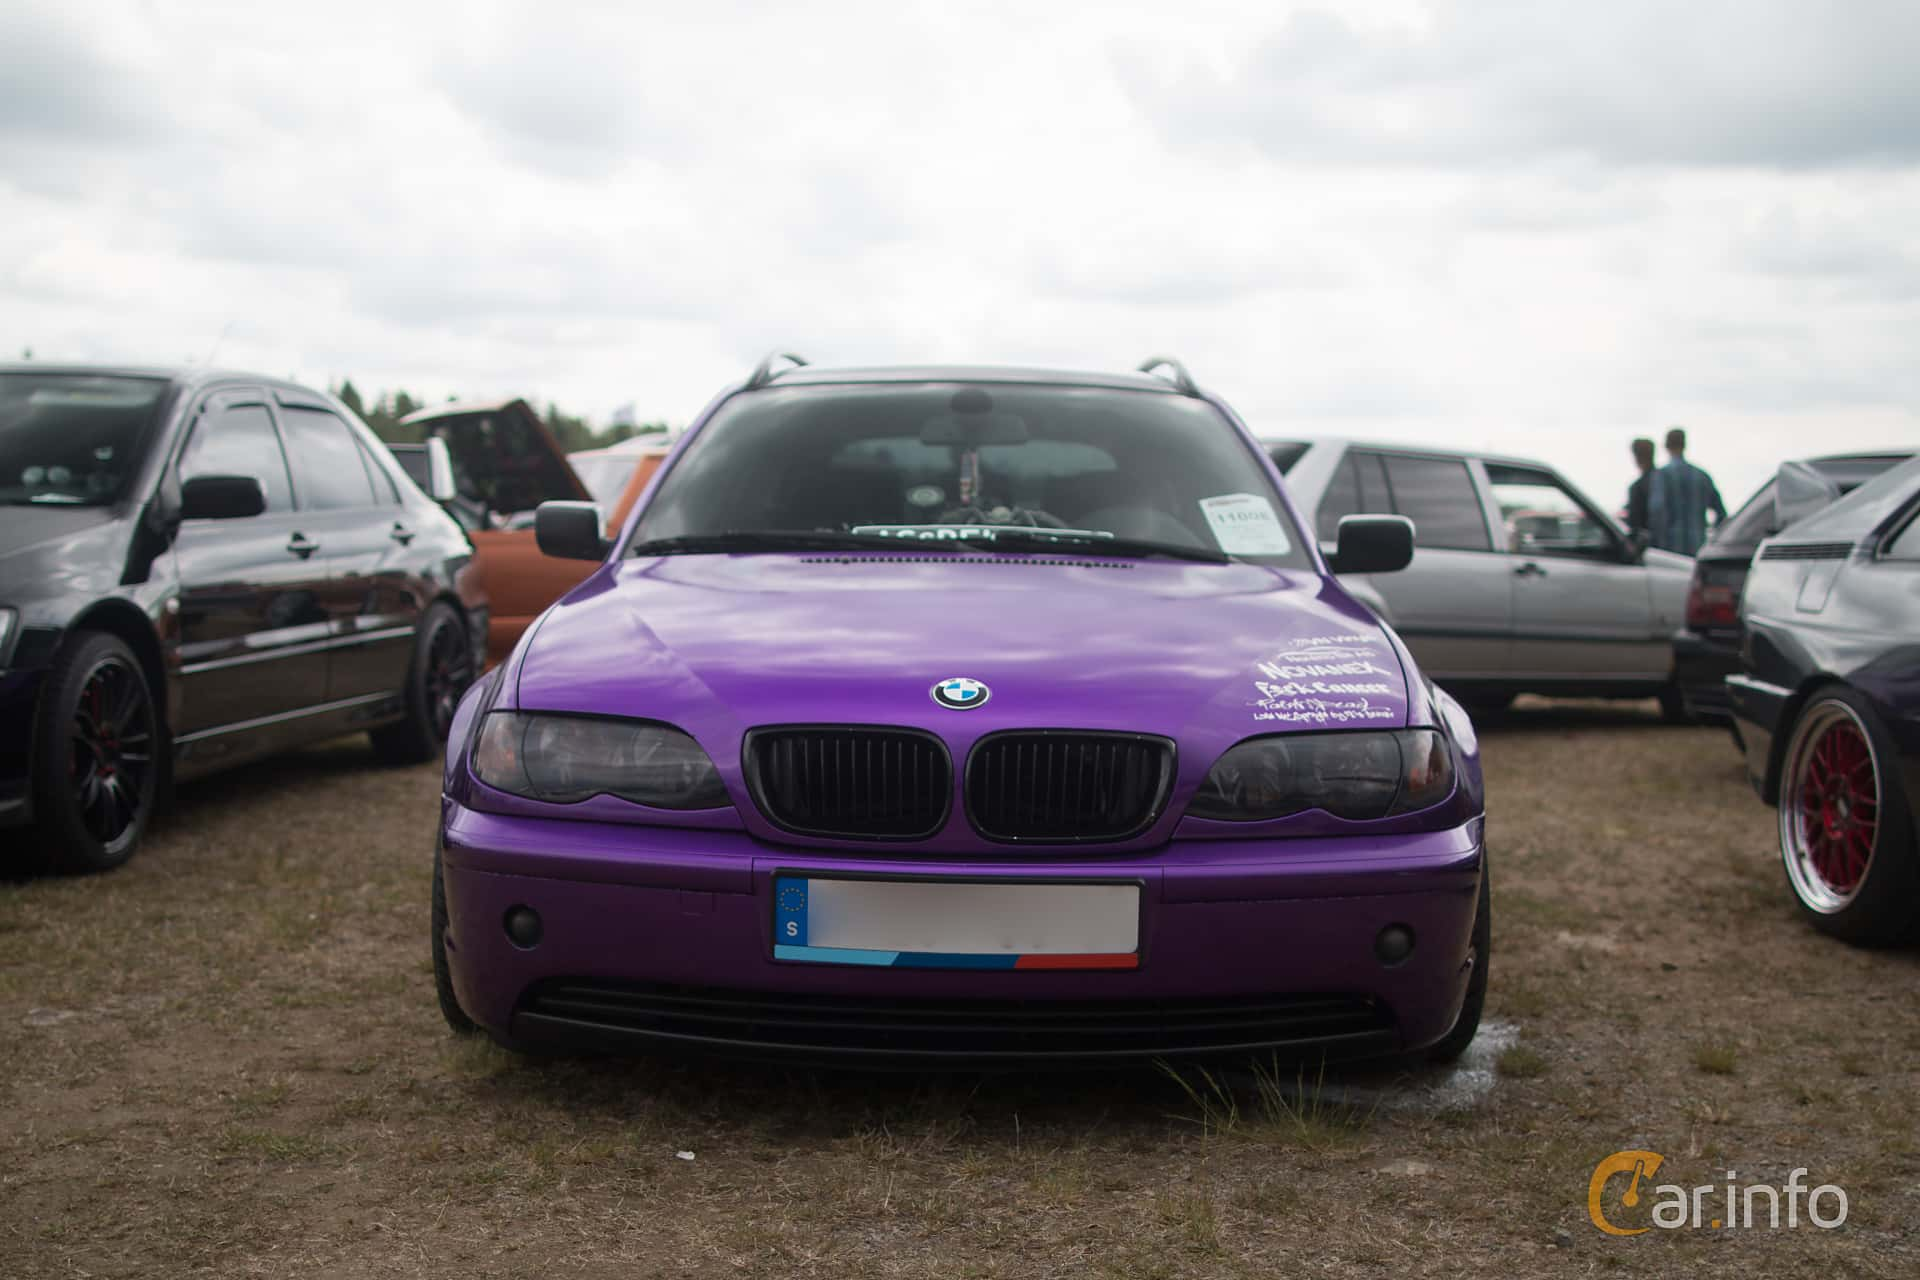 Front of BMW 325i Touring Manual, 192ps, 2002 at EDPS Emmaboda 2016